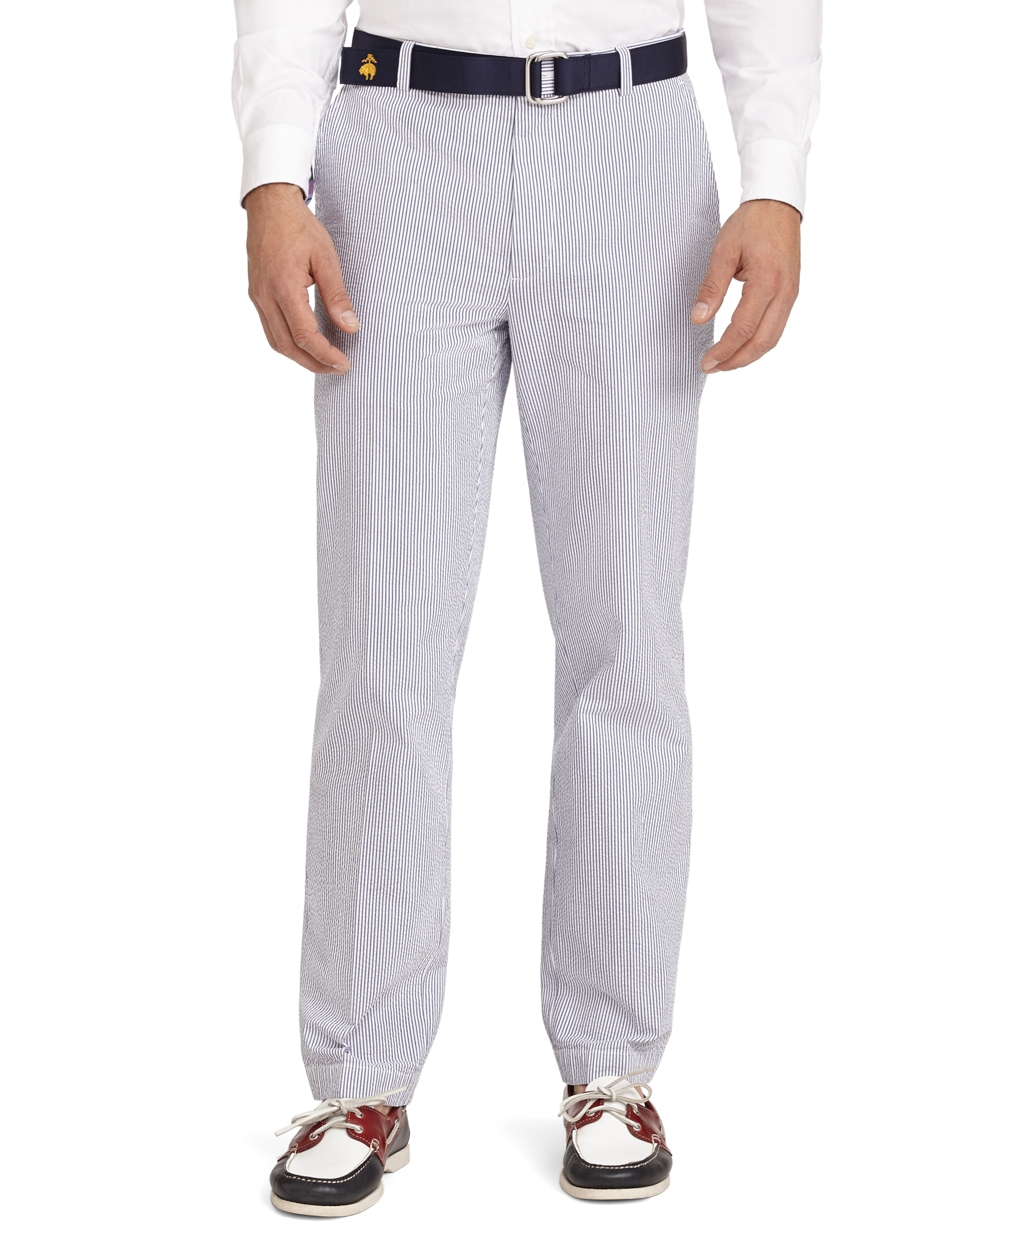 Find great deals on eBay for mens seersucker pants. Shop with confidence.